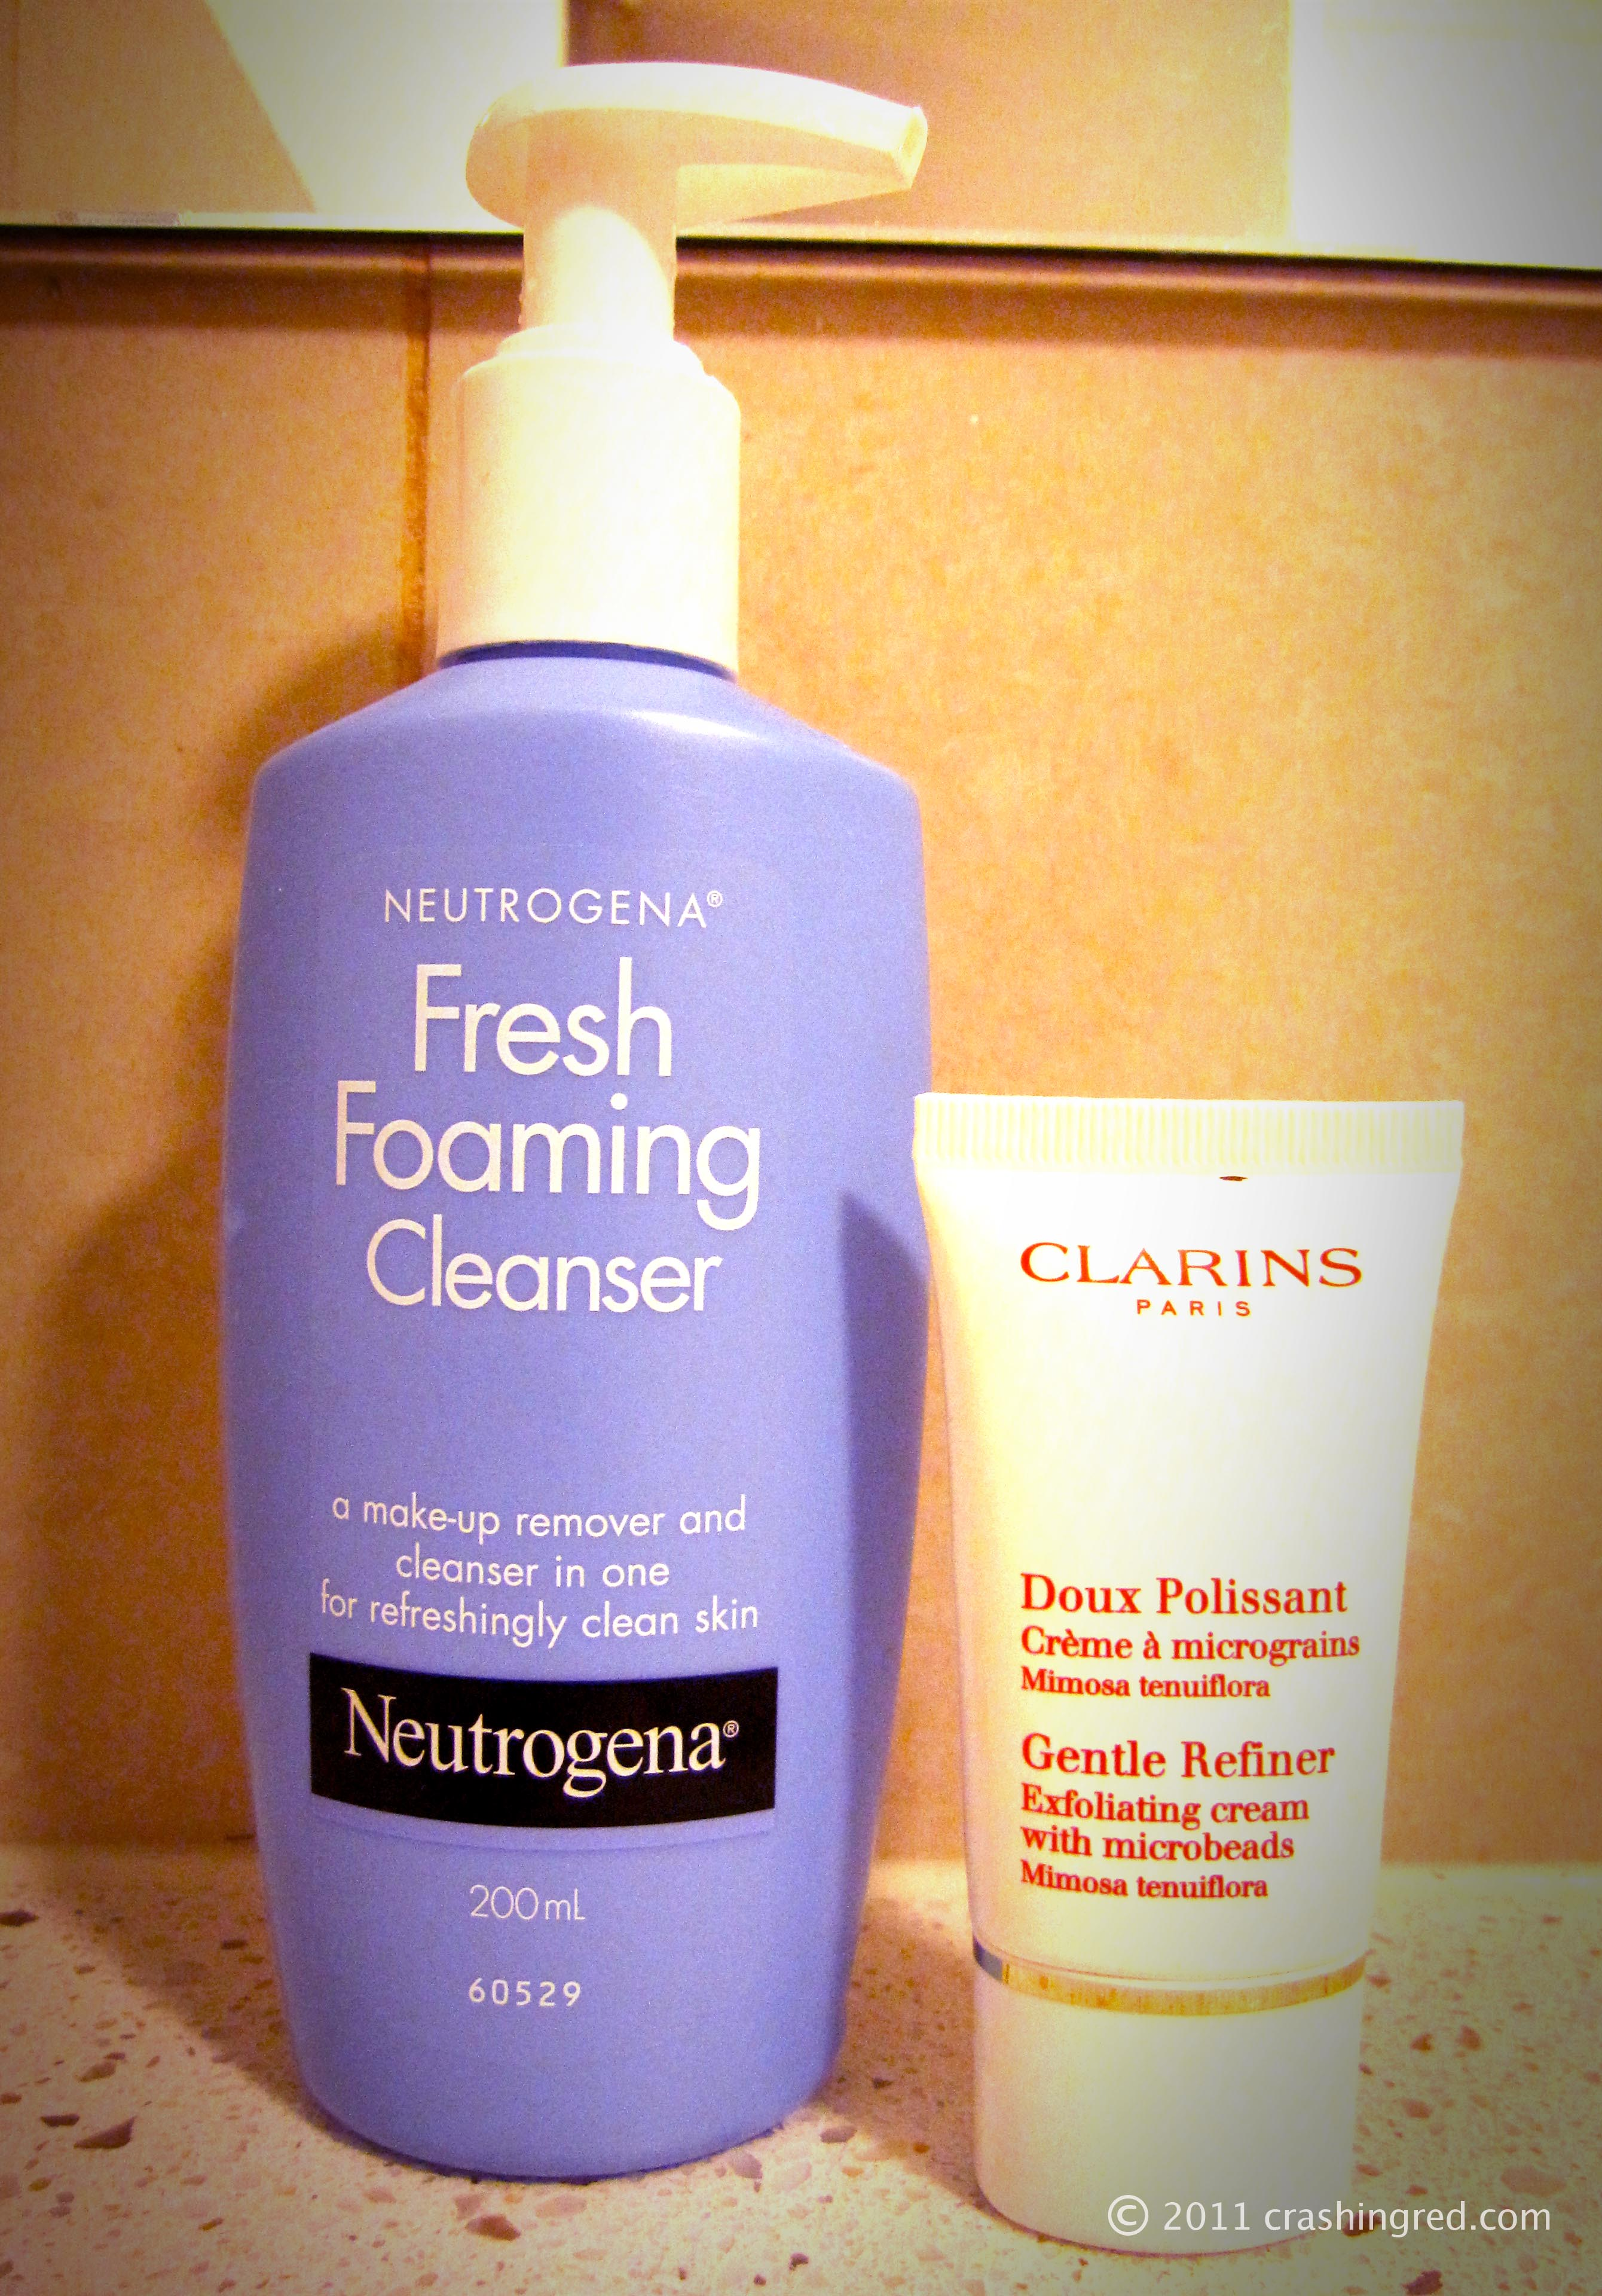 How to use neutrogena cleanser